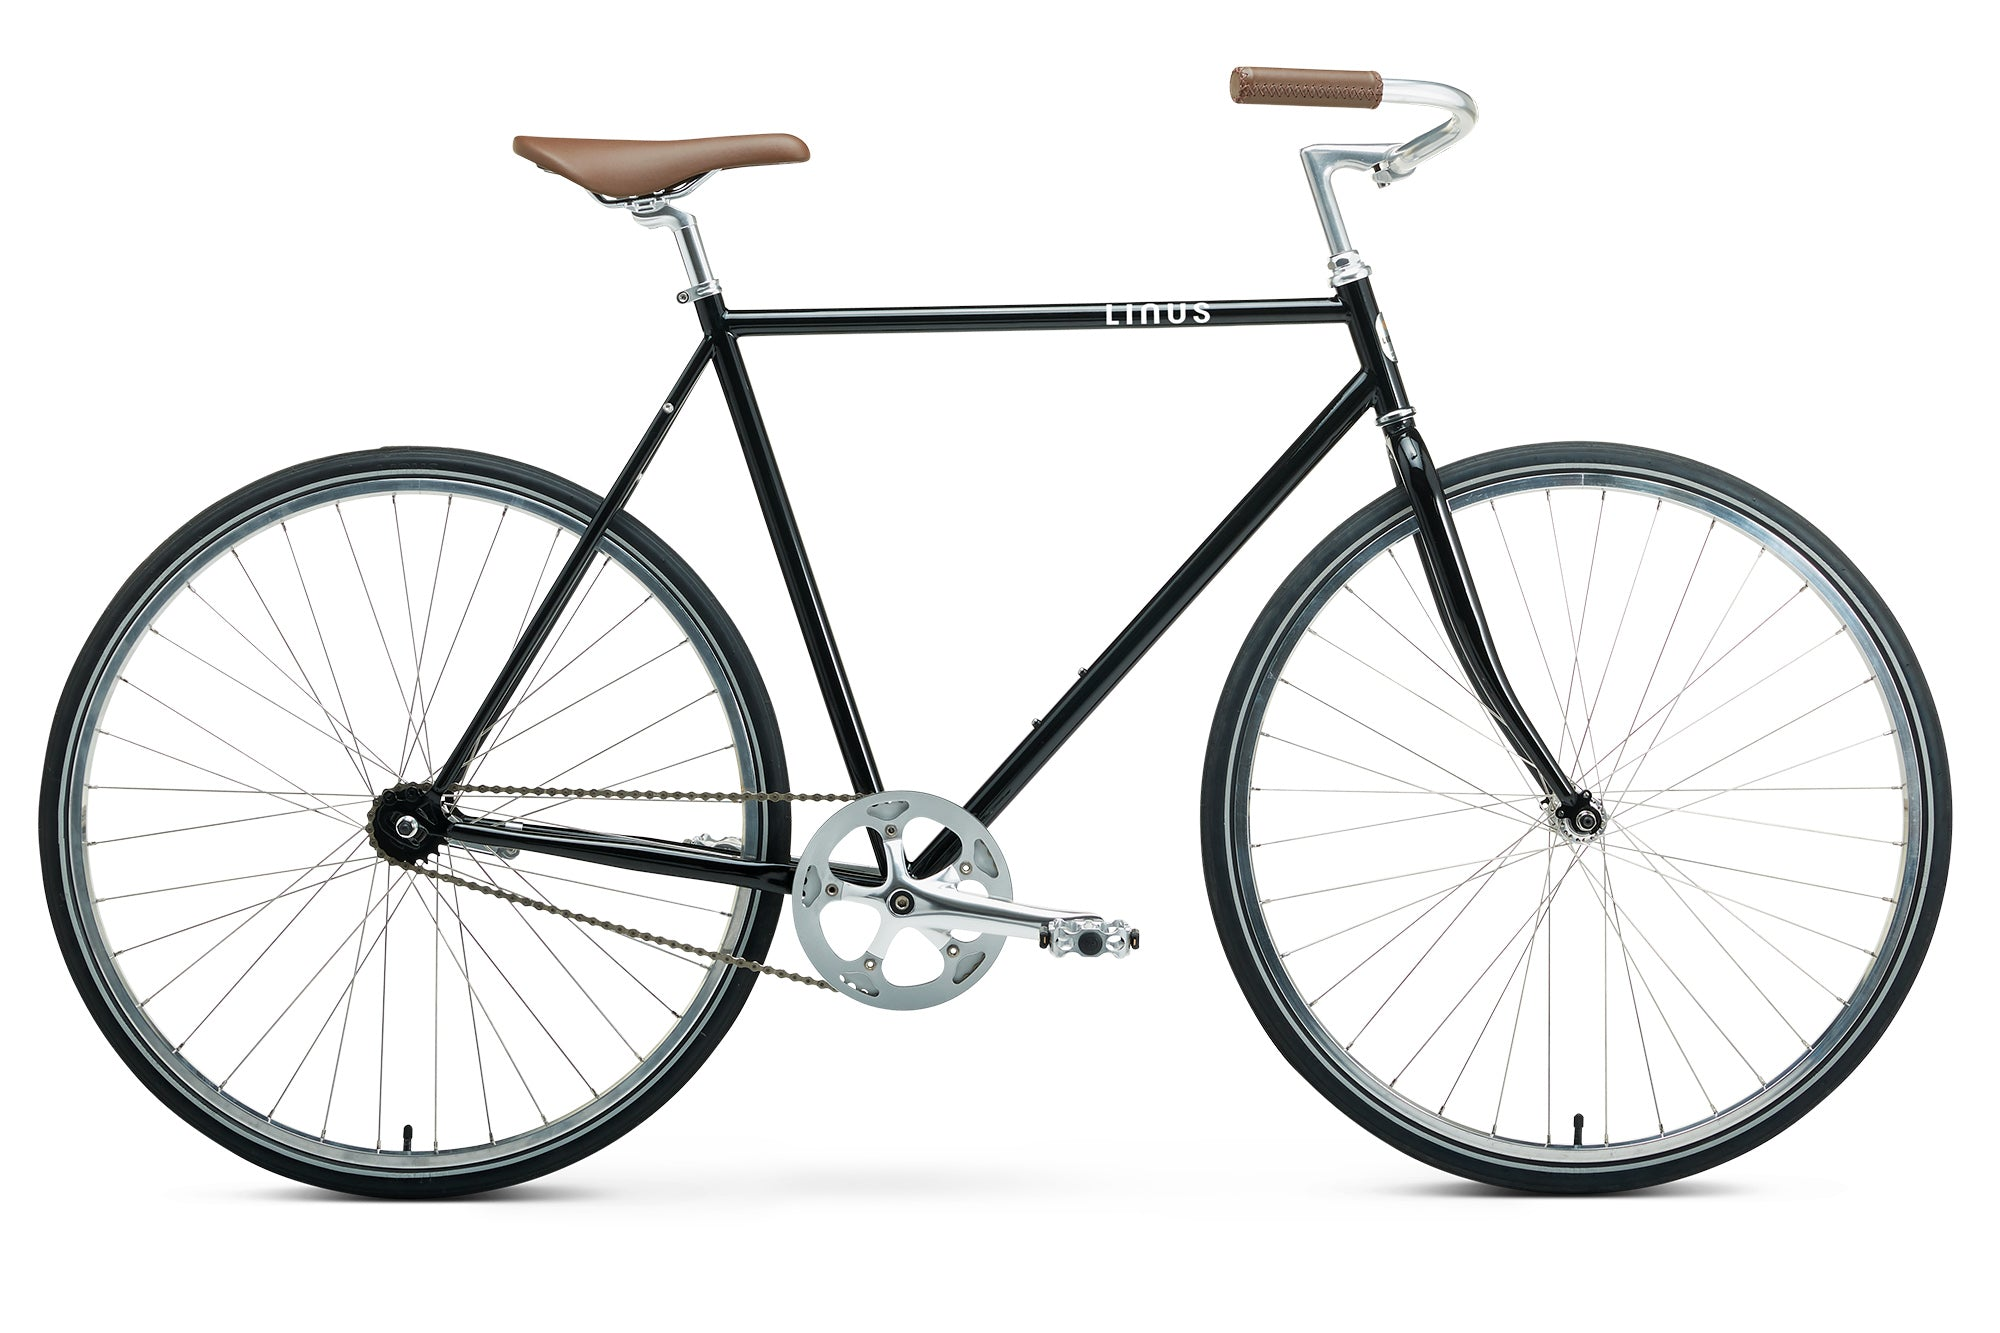 fa11d6379aa City bikes, vintage bicycles, european bicycles, retro bikes, linus ...